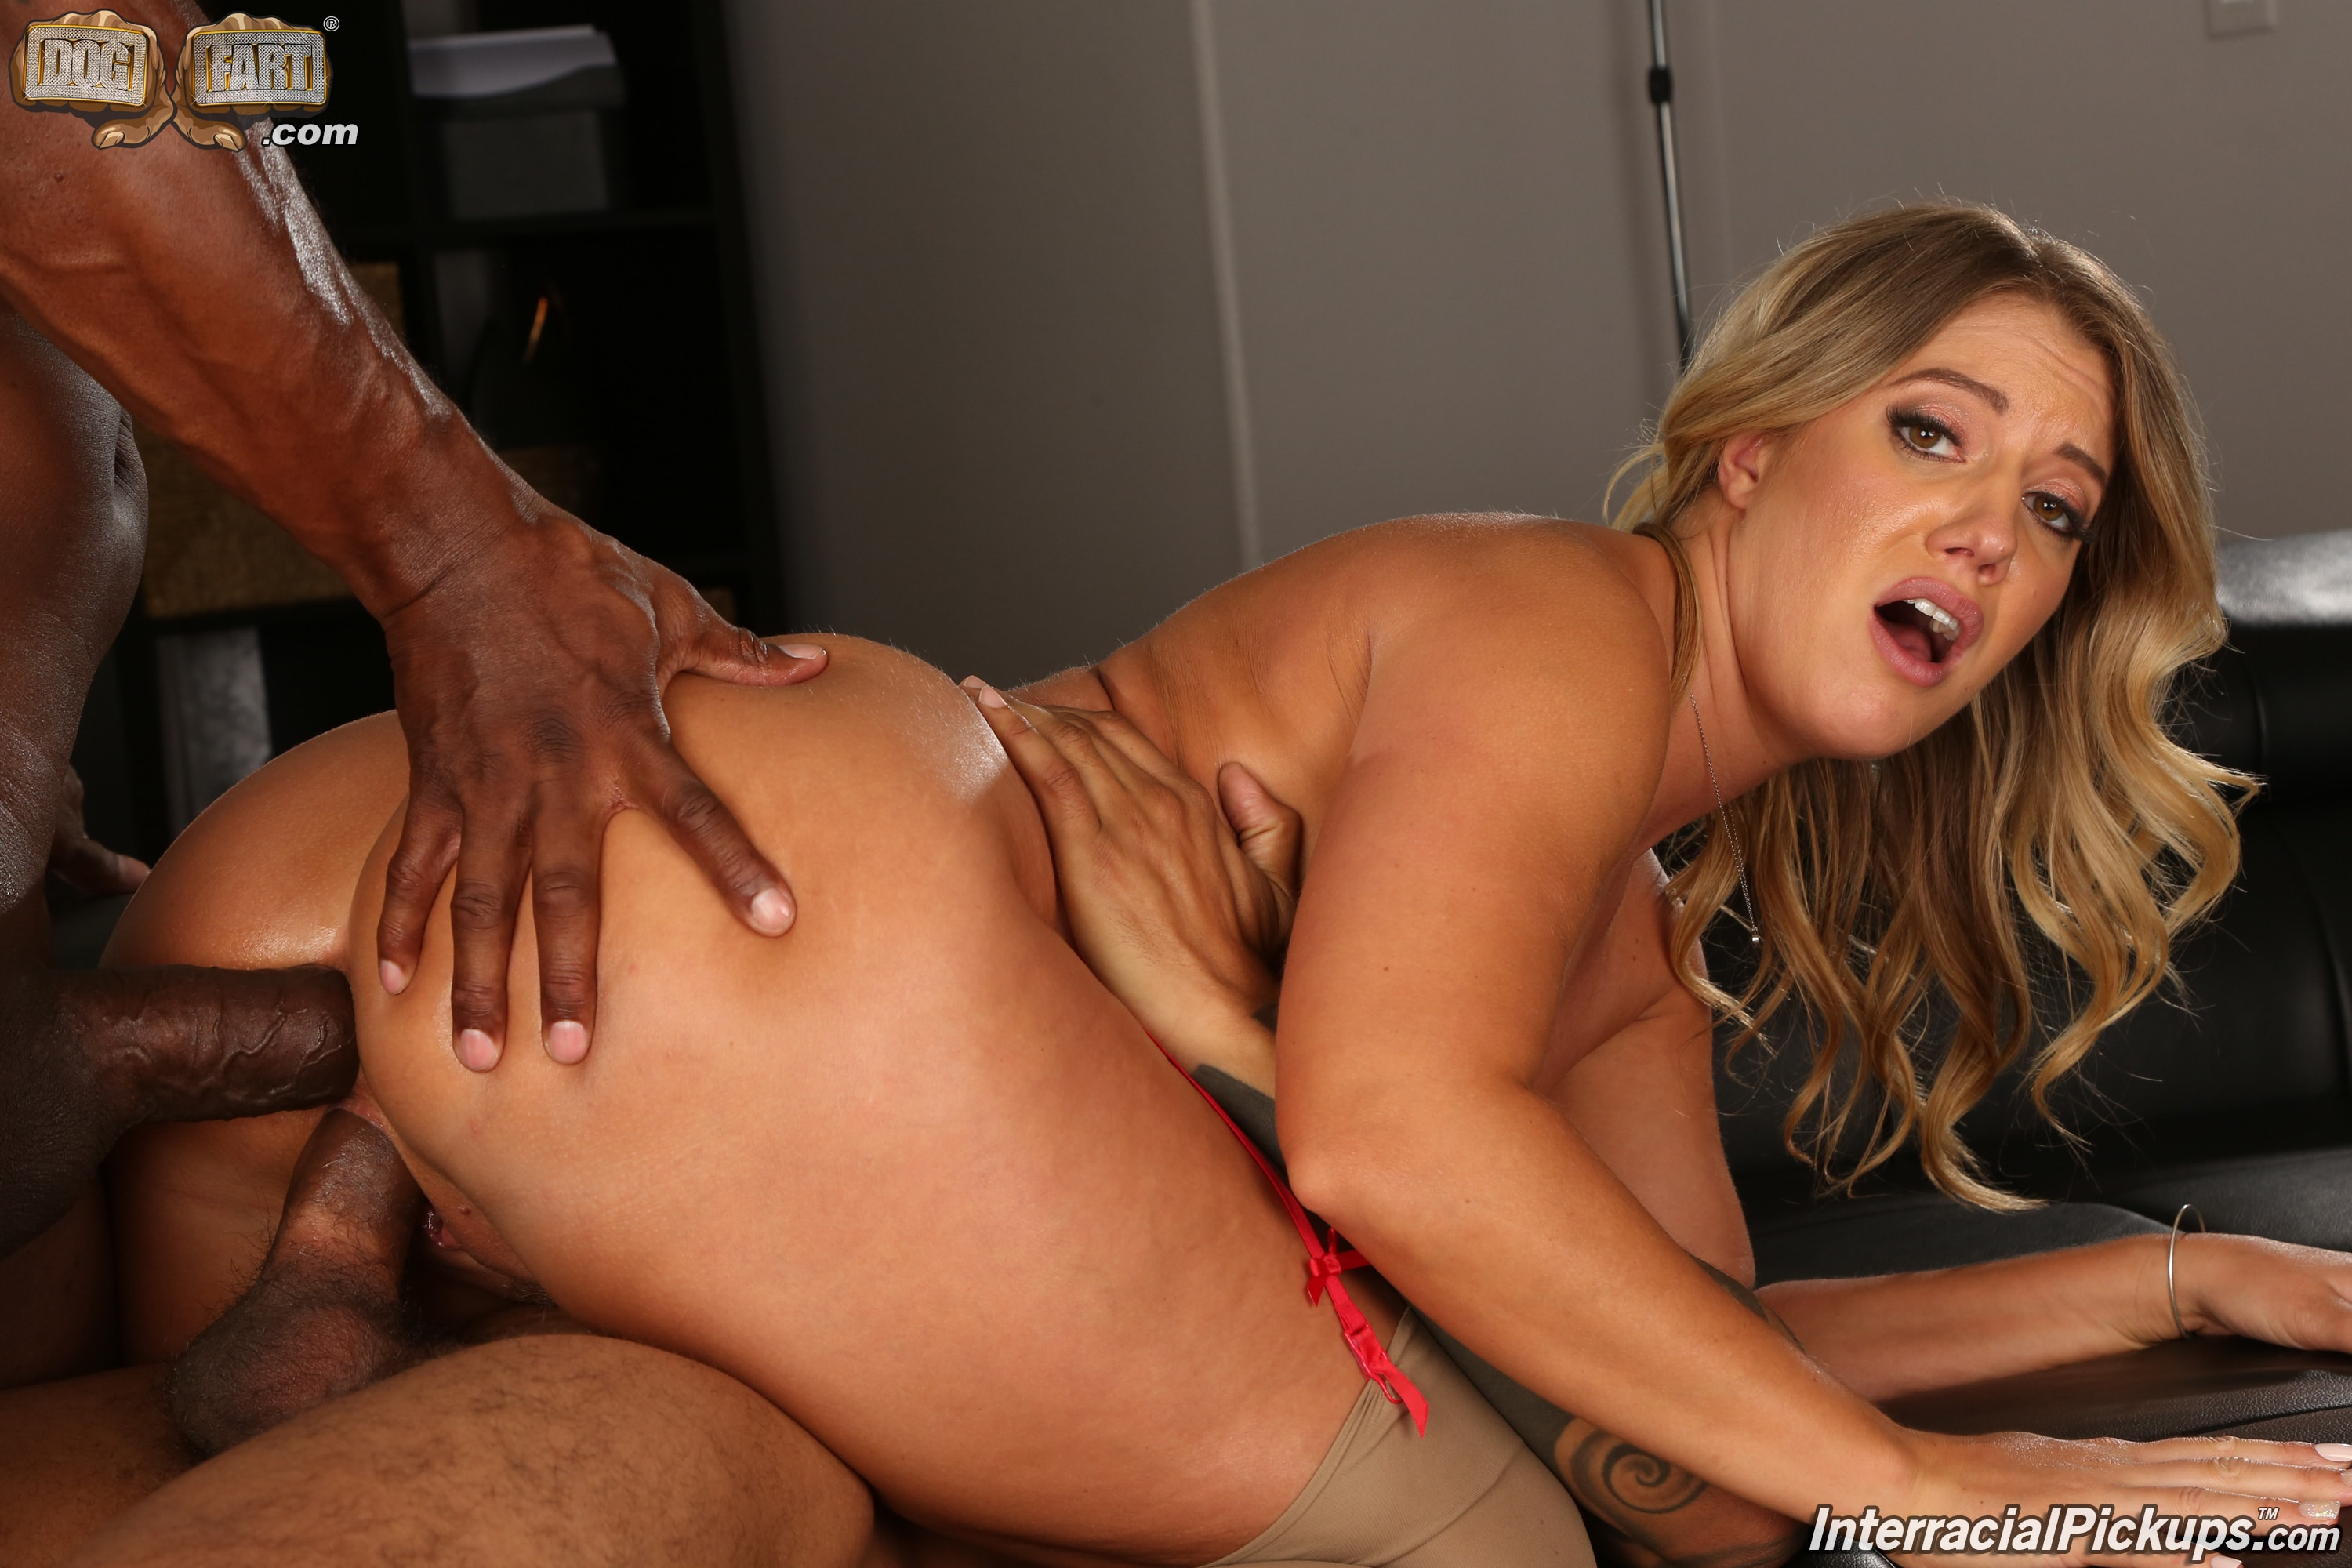 Dogfart '- Interracial Pickups - Scene 2' starring Candice Dare (Photo 20)